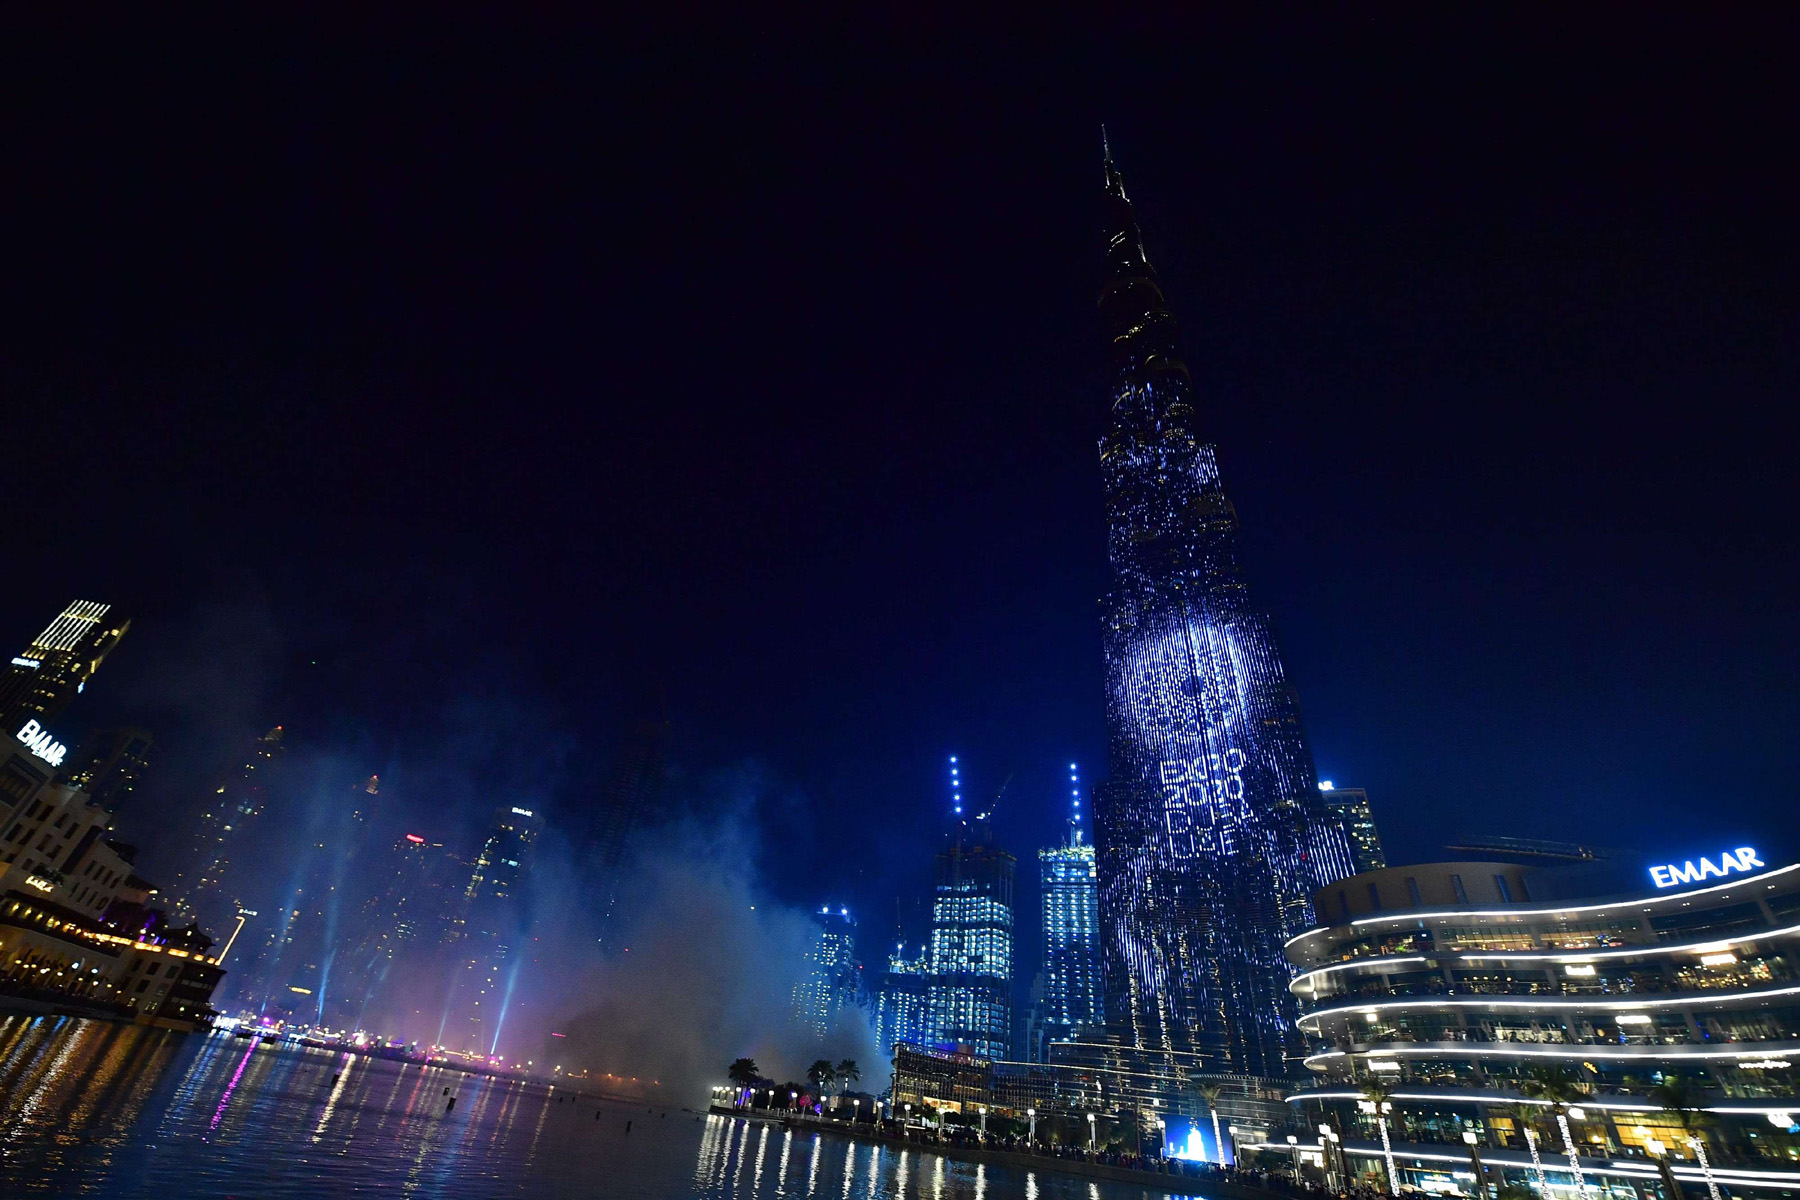 Dubai's Burj Khalifa, the world's tallest building, is illuminated during festivities marking the one-year countdown to Expo 2020, on October 20, 2019. (AFP)